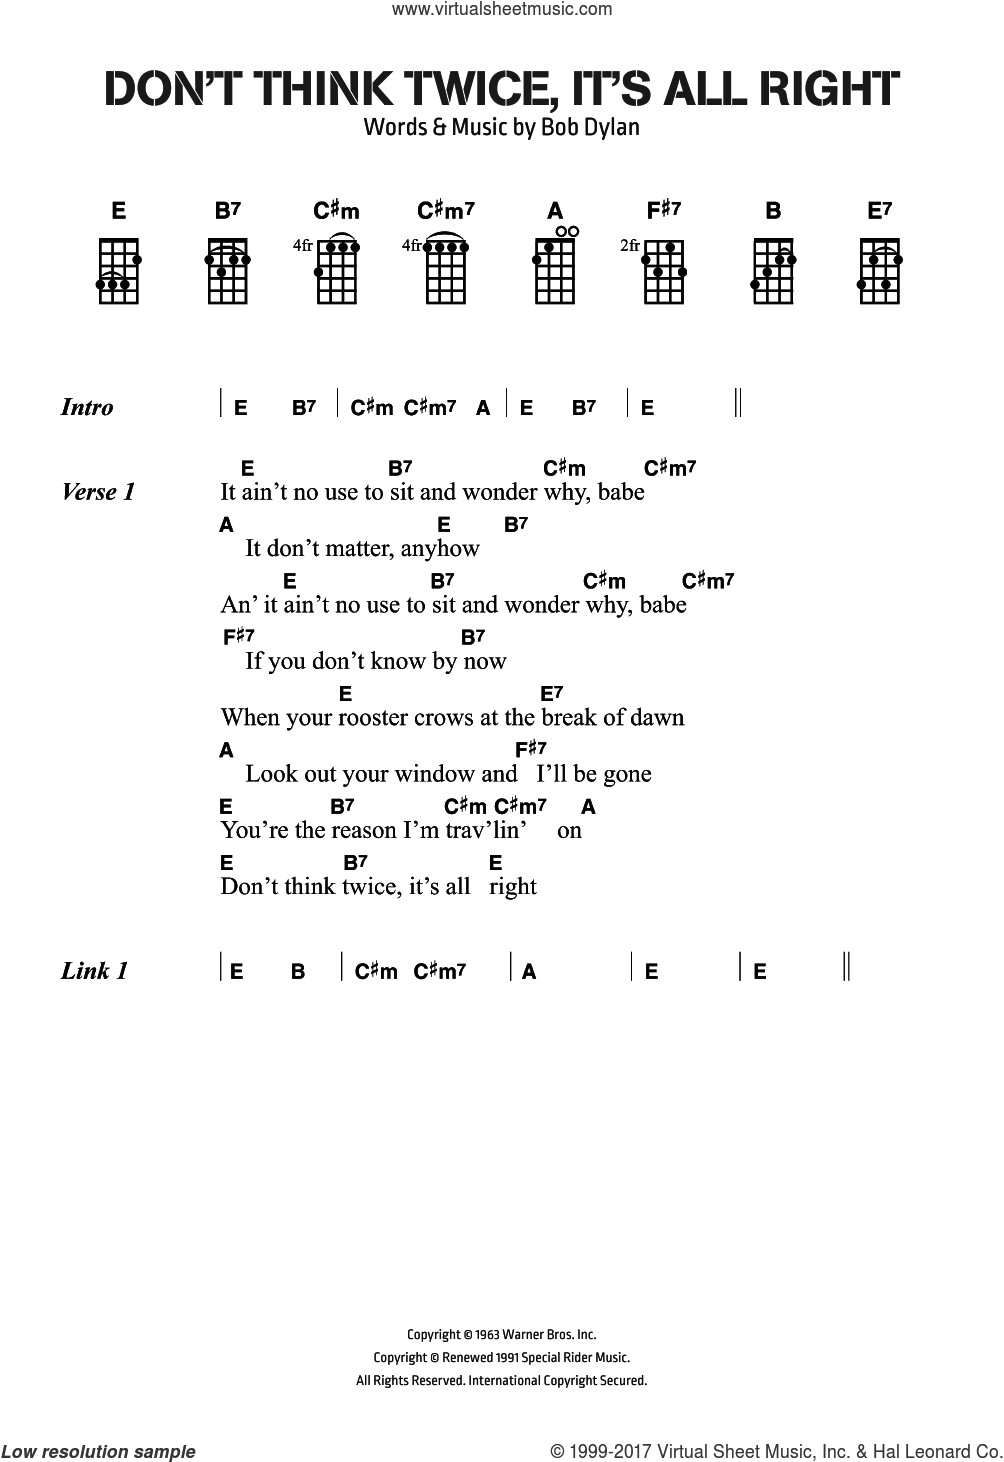 Don't Think Twice, It's All Right sheet music for voice, piano or guitar by Bob Dylan, intermediate skill level